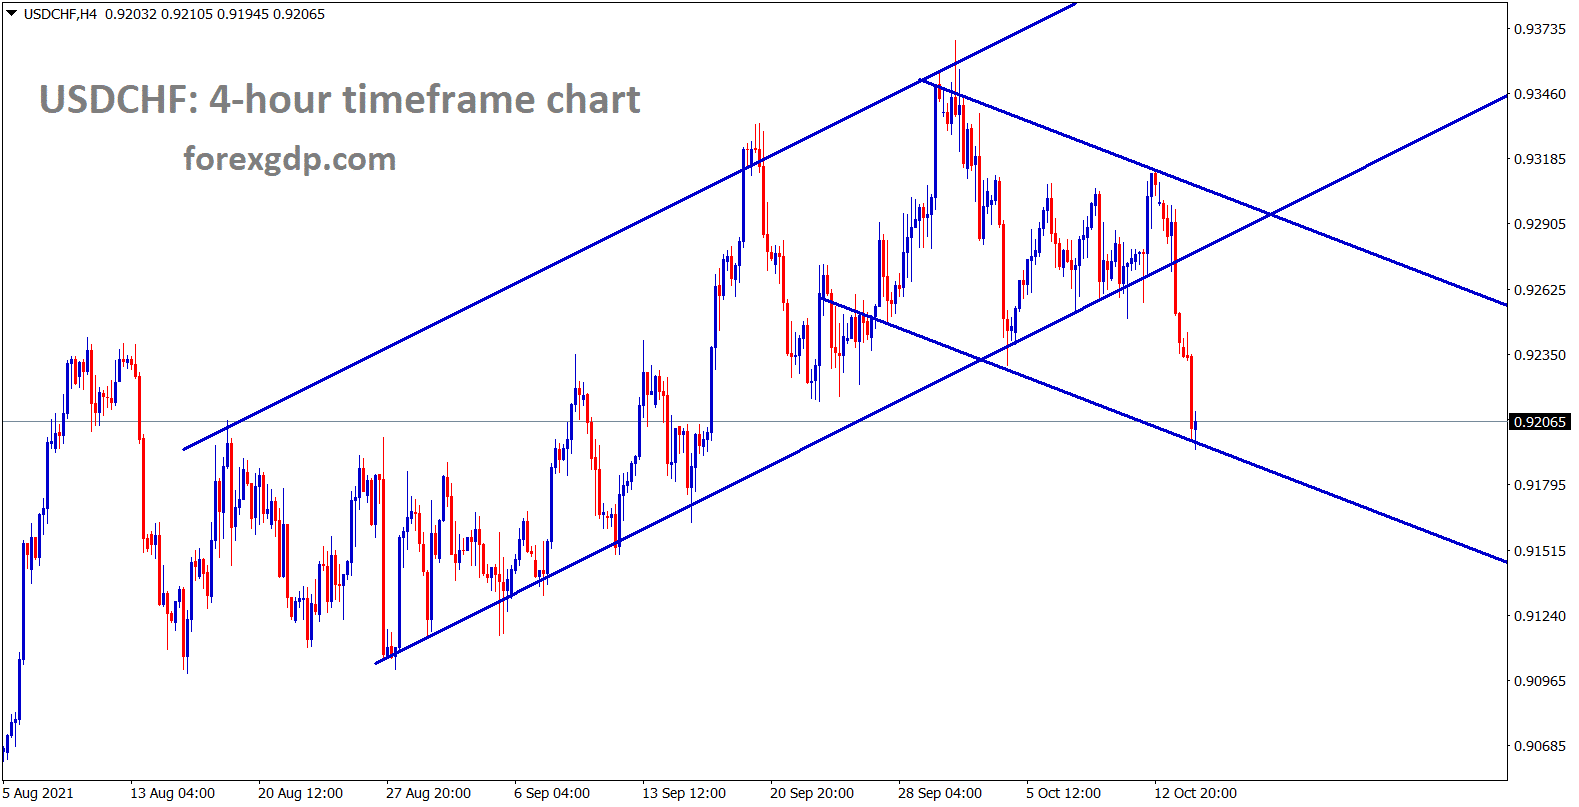 USDCHF has broken the uptrend line and now falling between the channel range